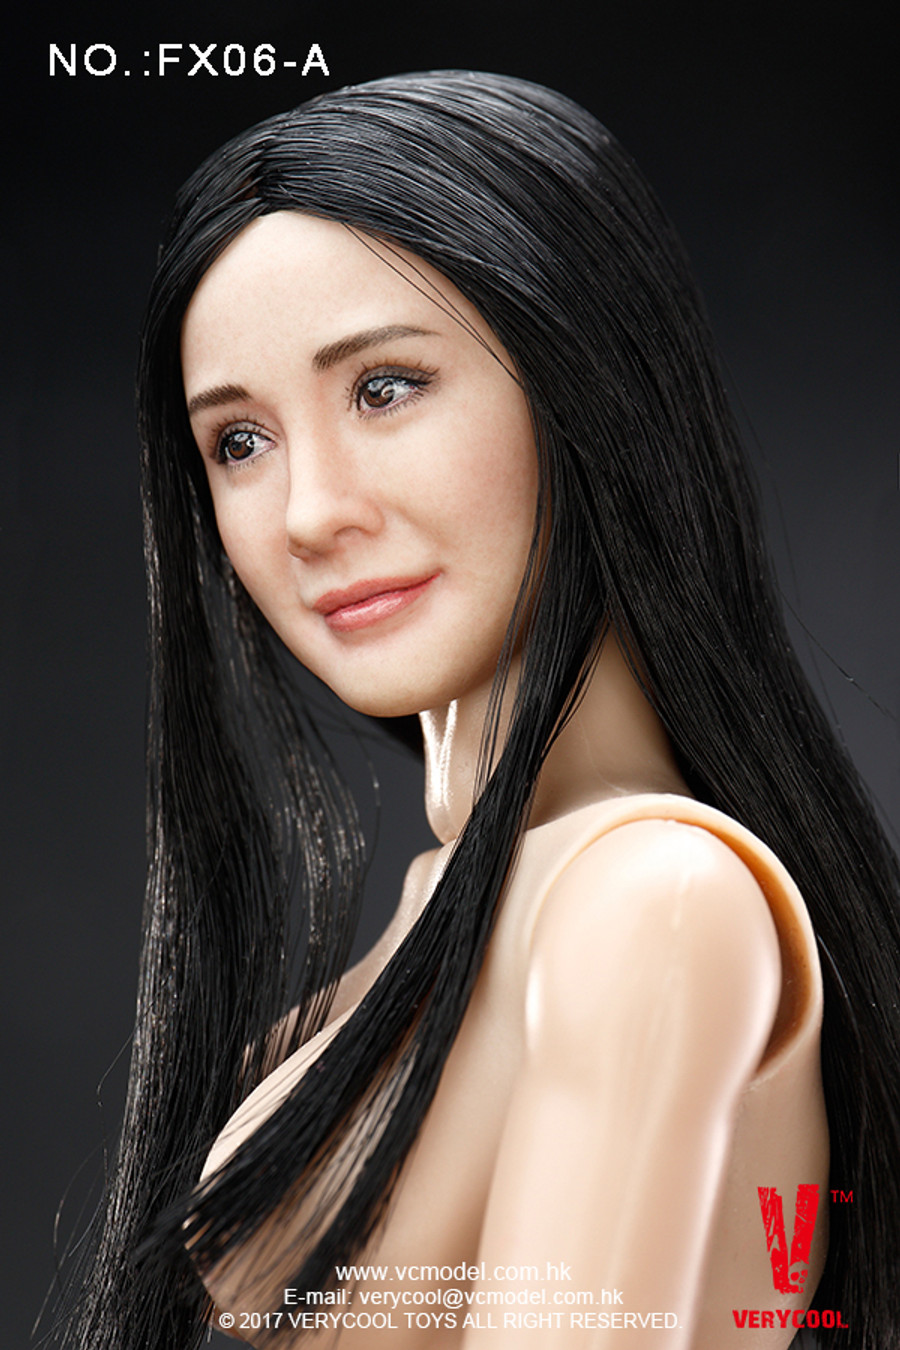 Very Cool - Asian Actress Black Straight Hair Headsculpt + VC 3.0 Female Body Set